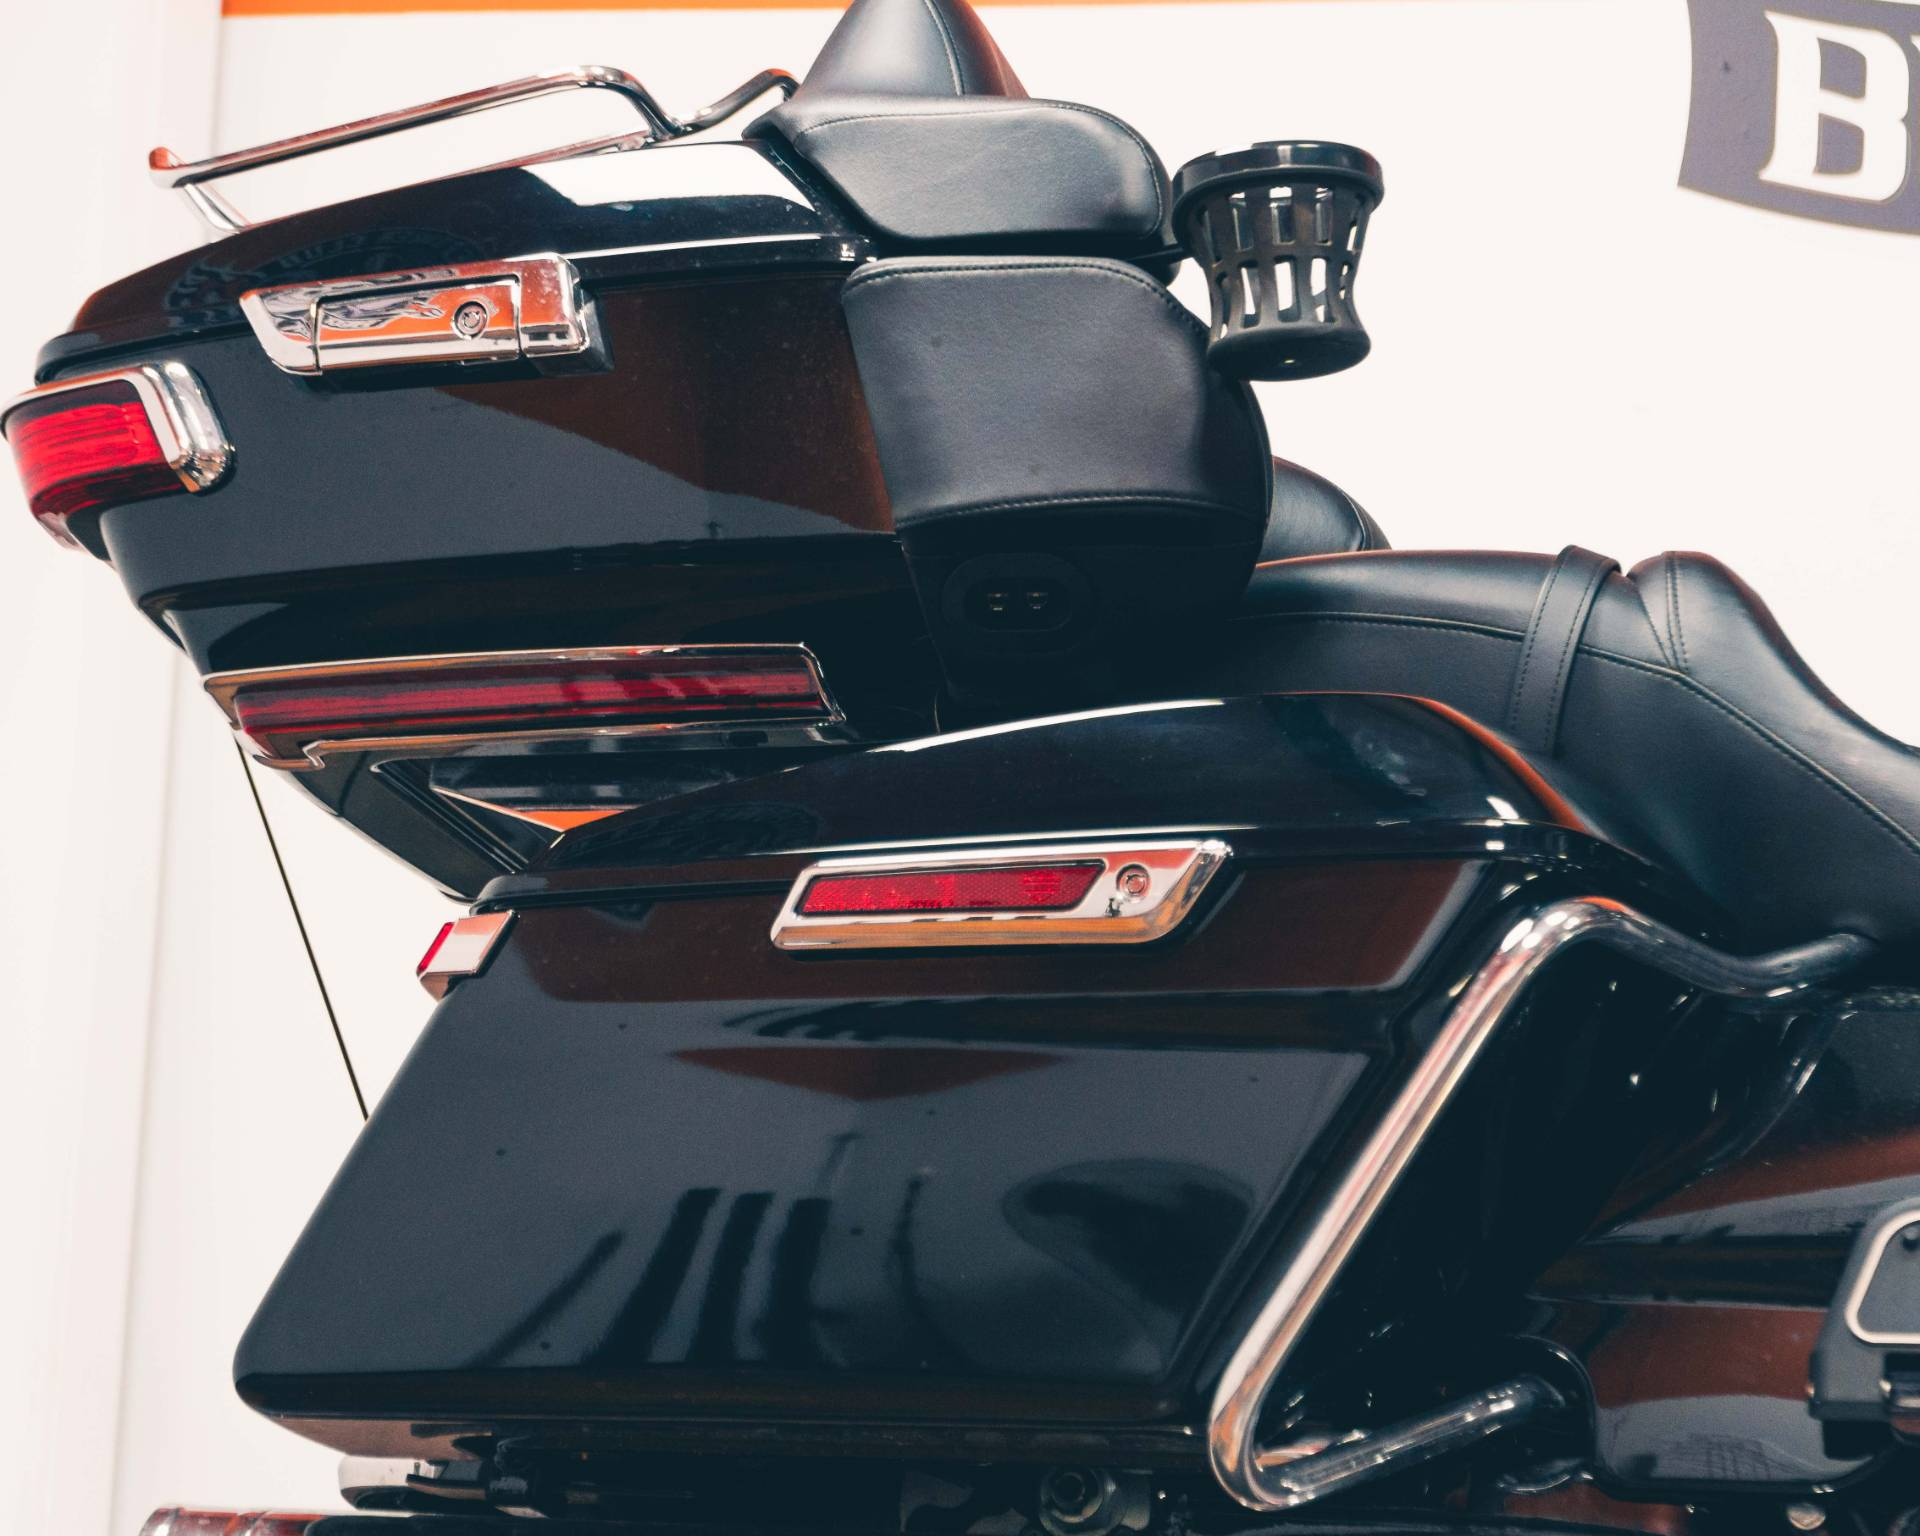 2012 Harley-Davidson Electra Glide® Ultra Limited in Marion, Illinois - Photo 15